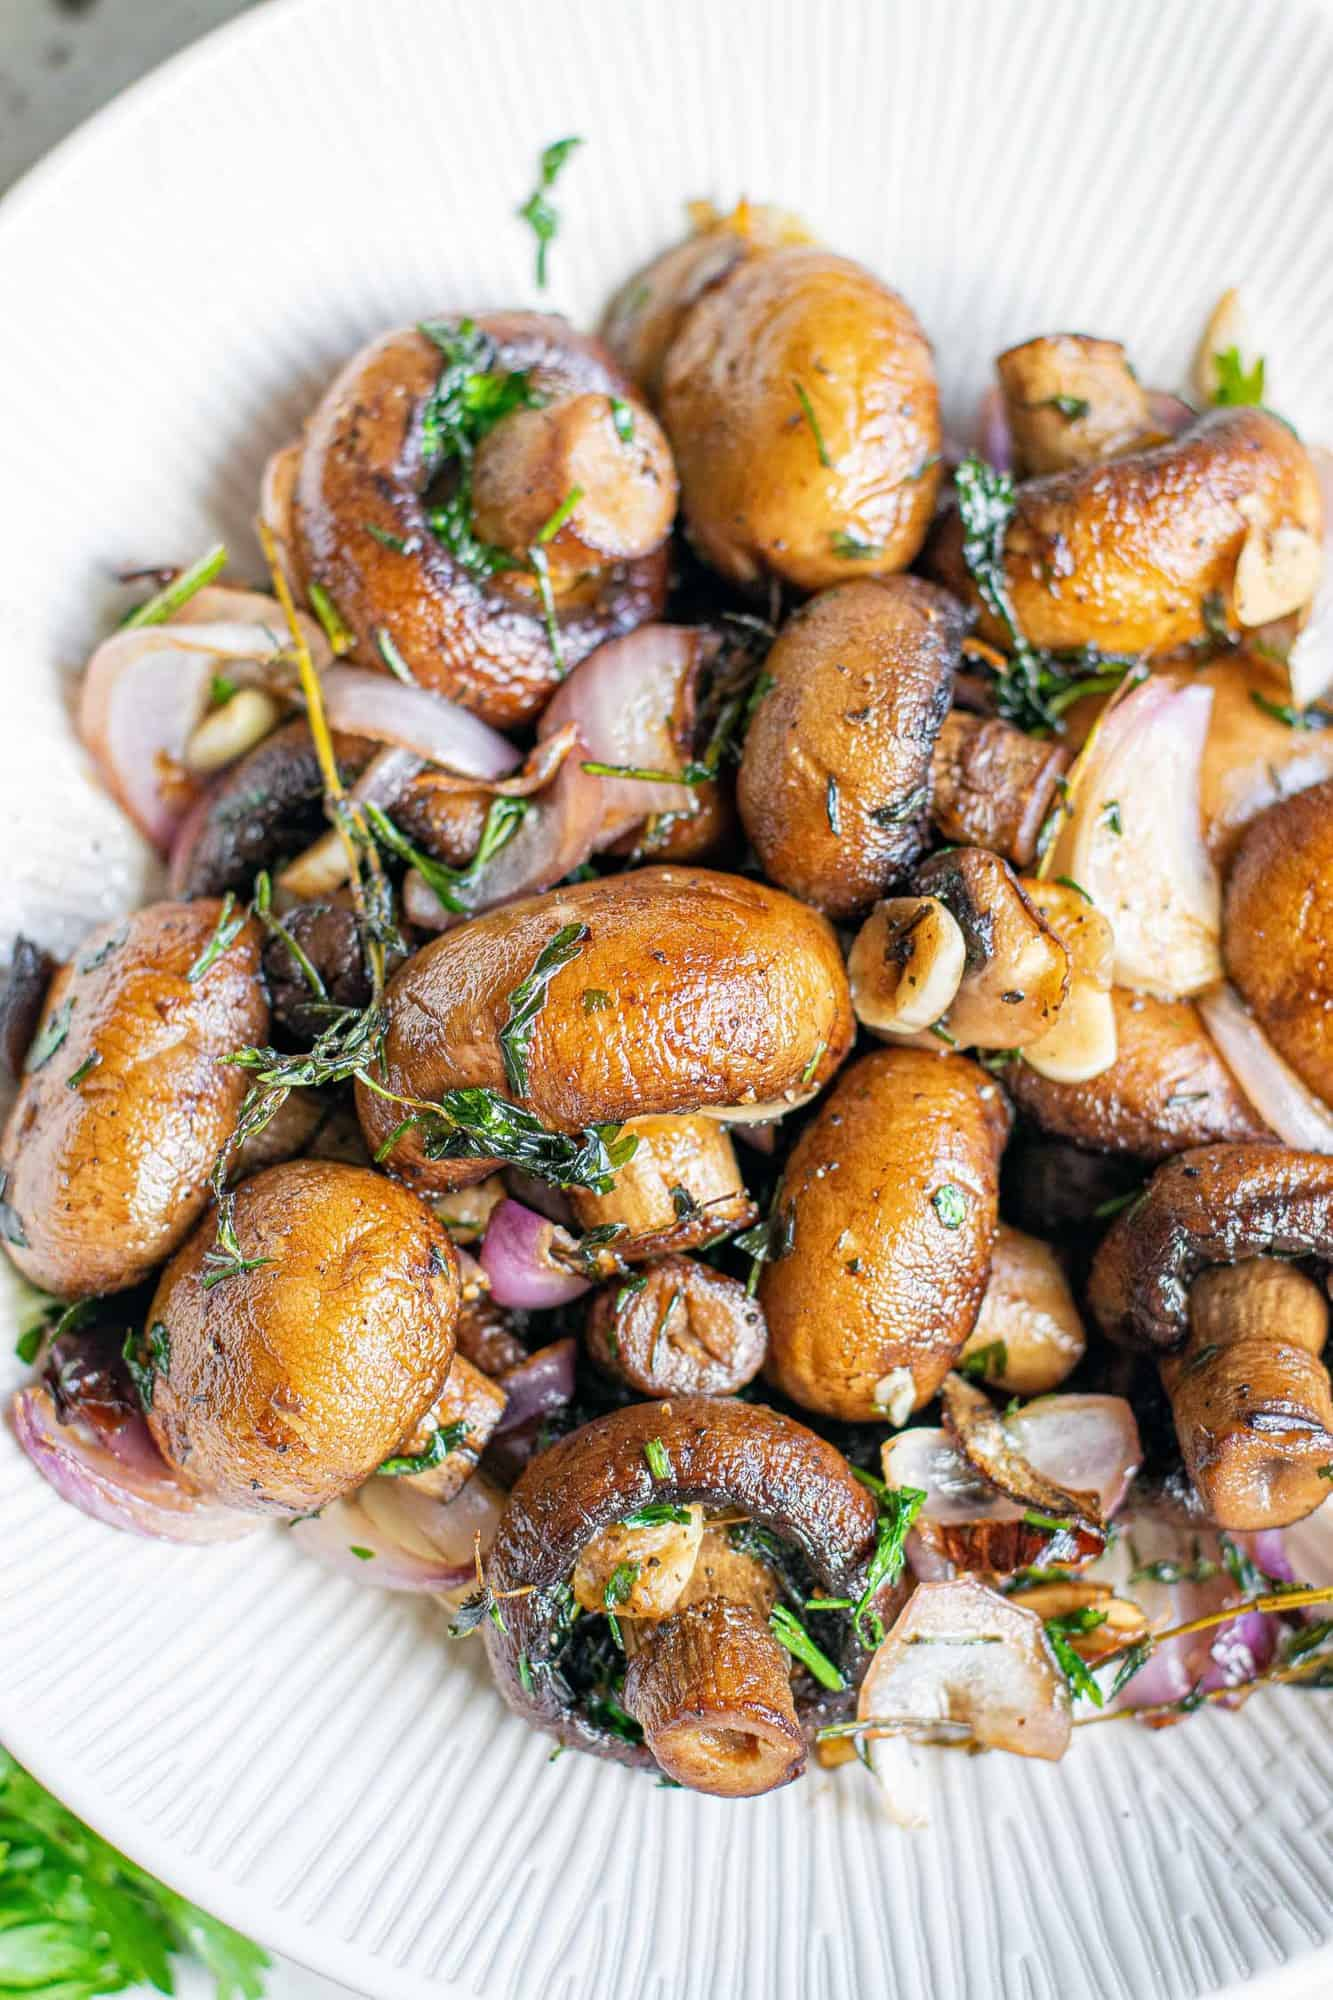 Golden brown cooked mushrooms in a white bowl.